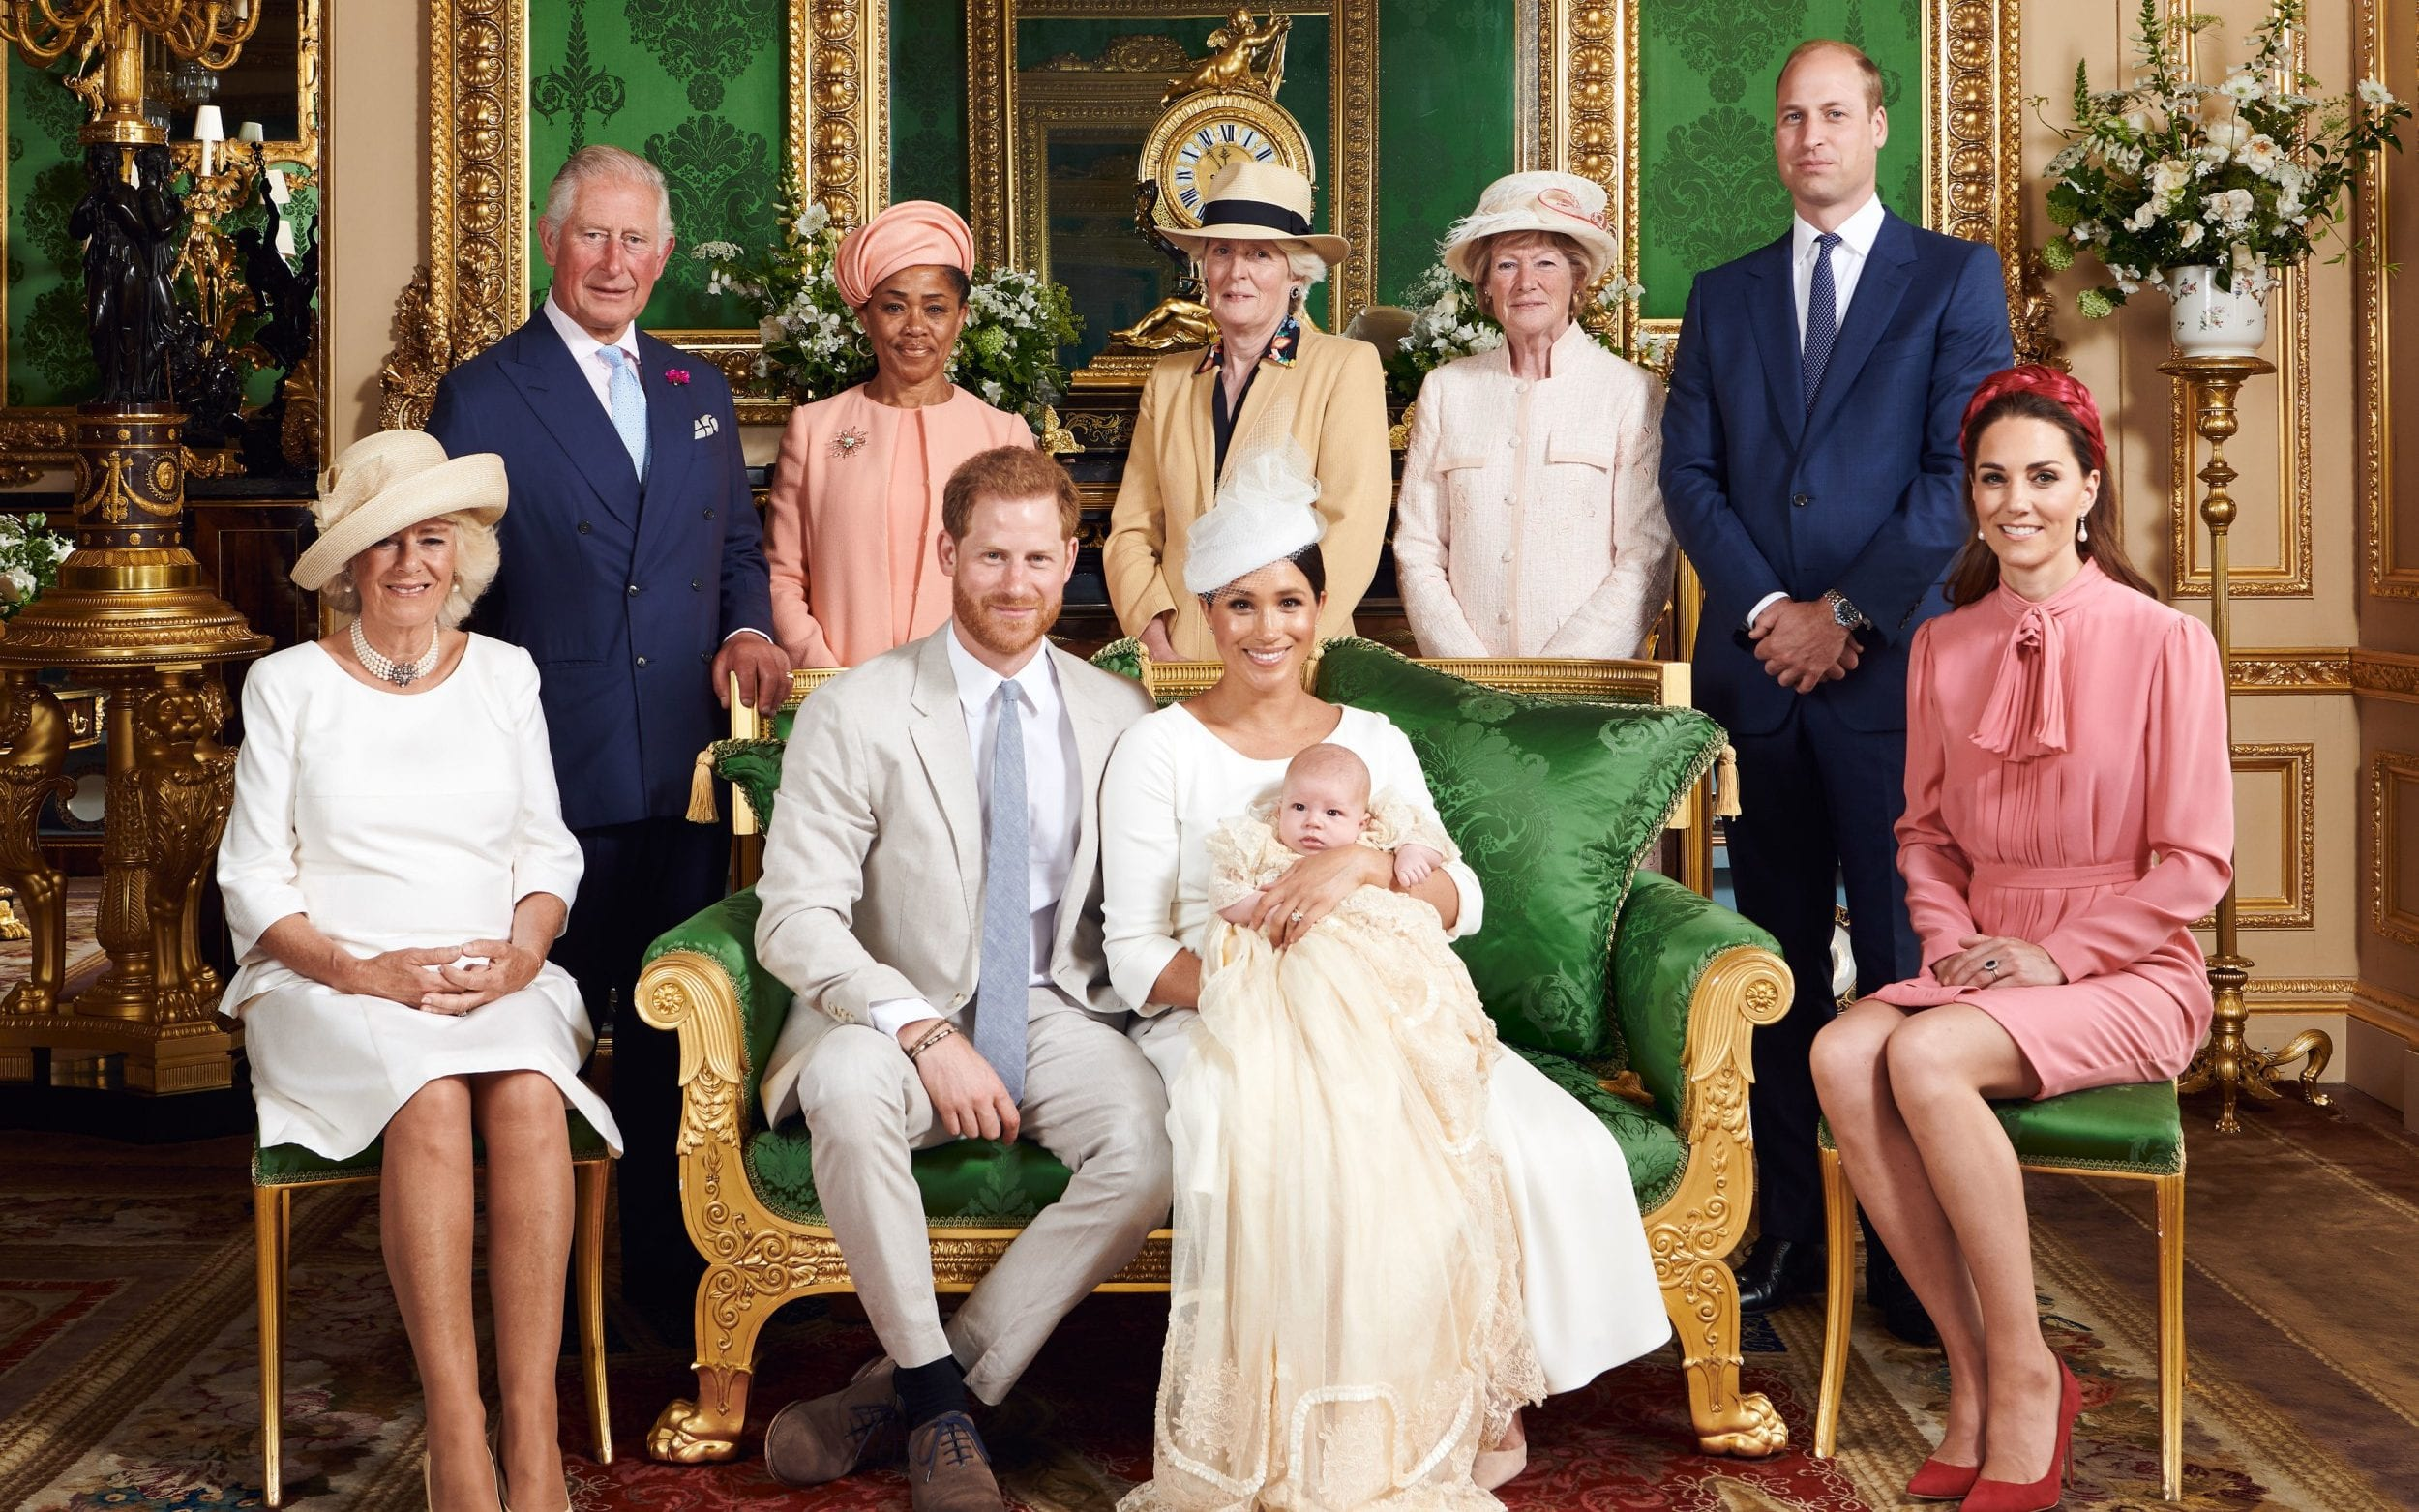 Thomas Markle wishes Archie health and happiness from afar, as Prince Harry and Meghans friends rally for secretive christening operation